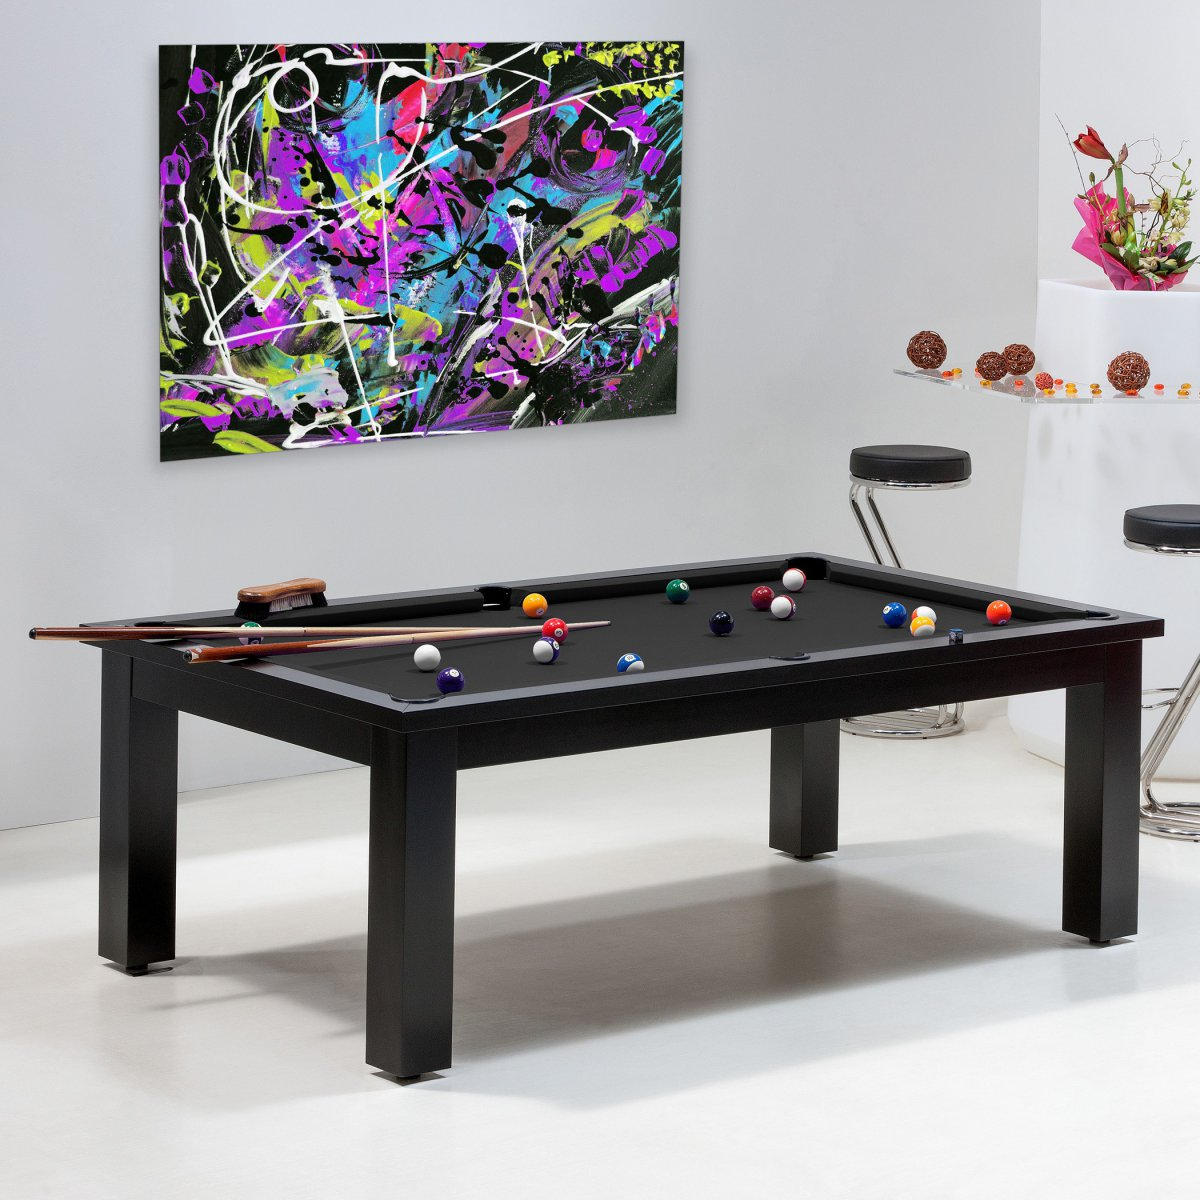 Achat billard uniquement sur billards de france le miami - Table billard transformable occasion ...